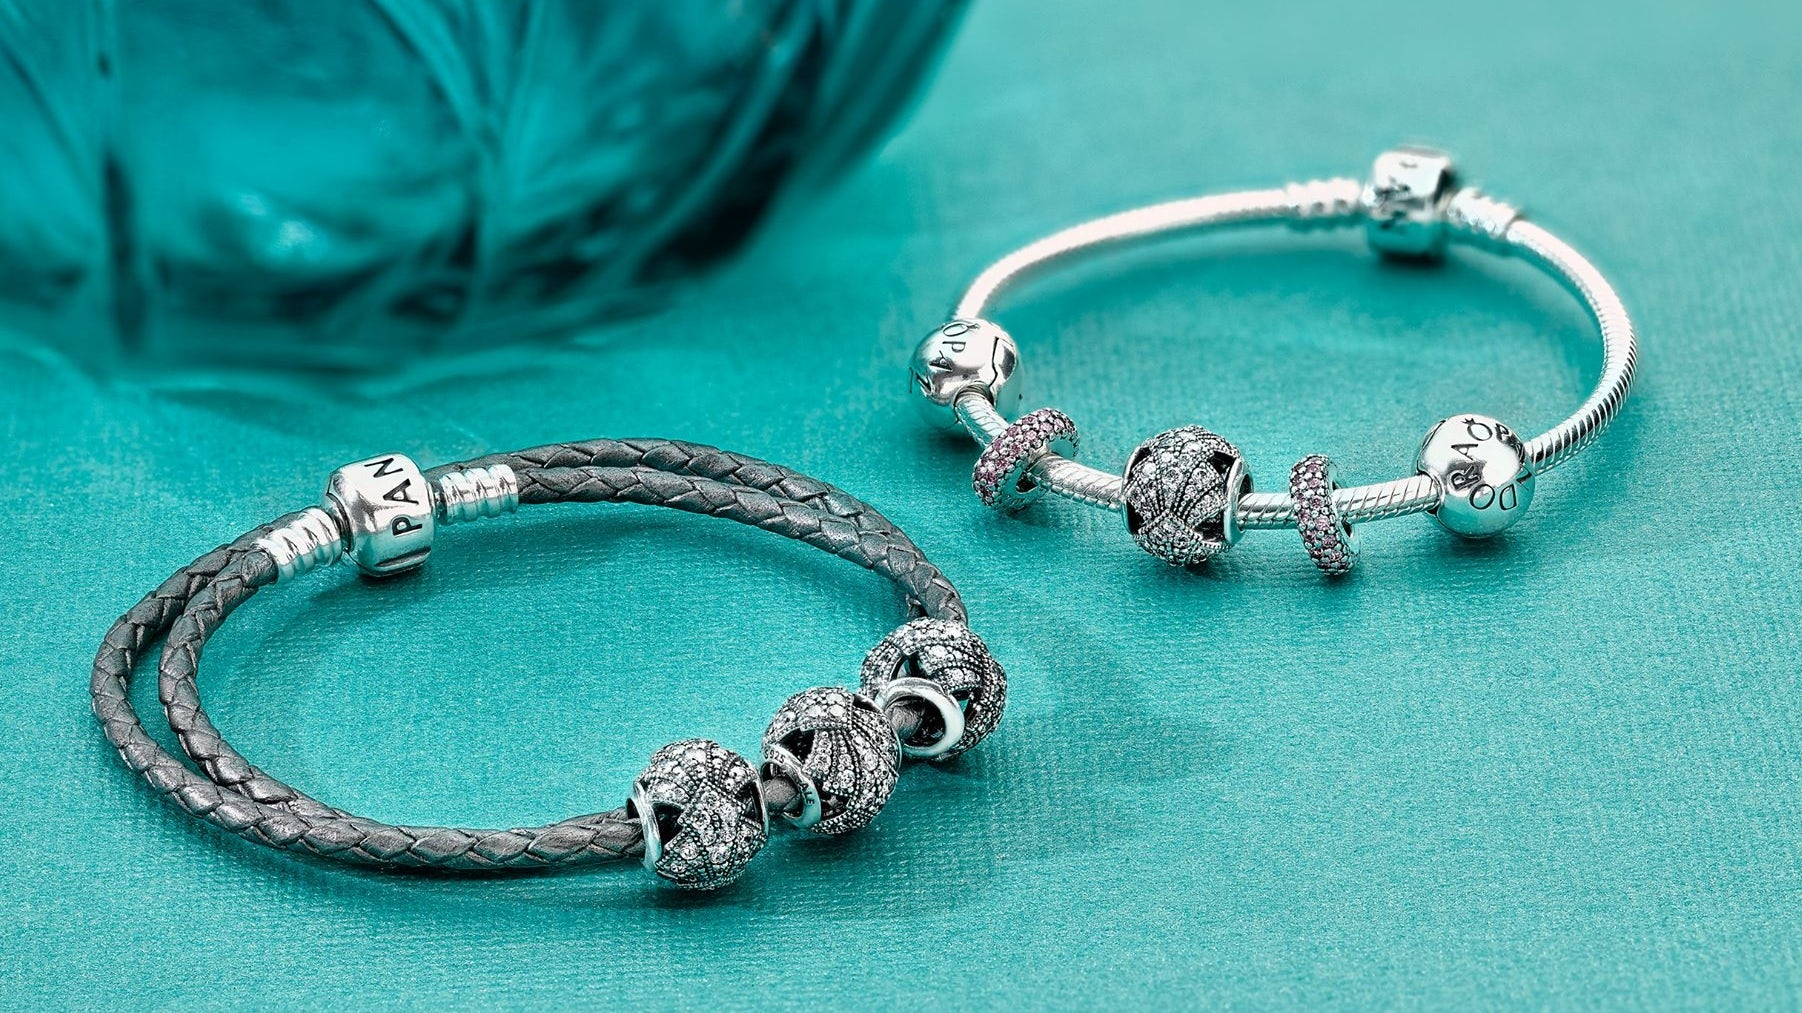 Pandora bracelets | Source: Courtesy